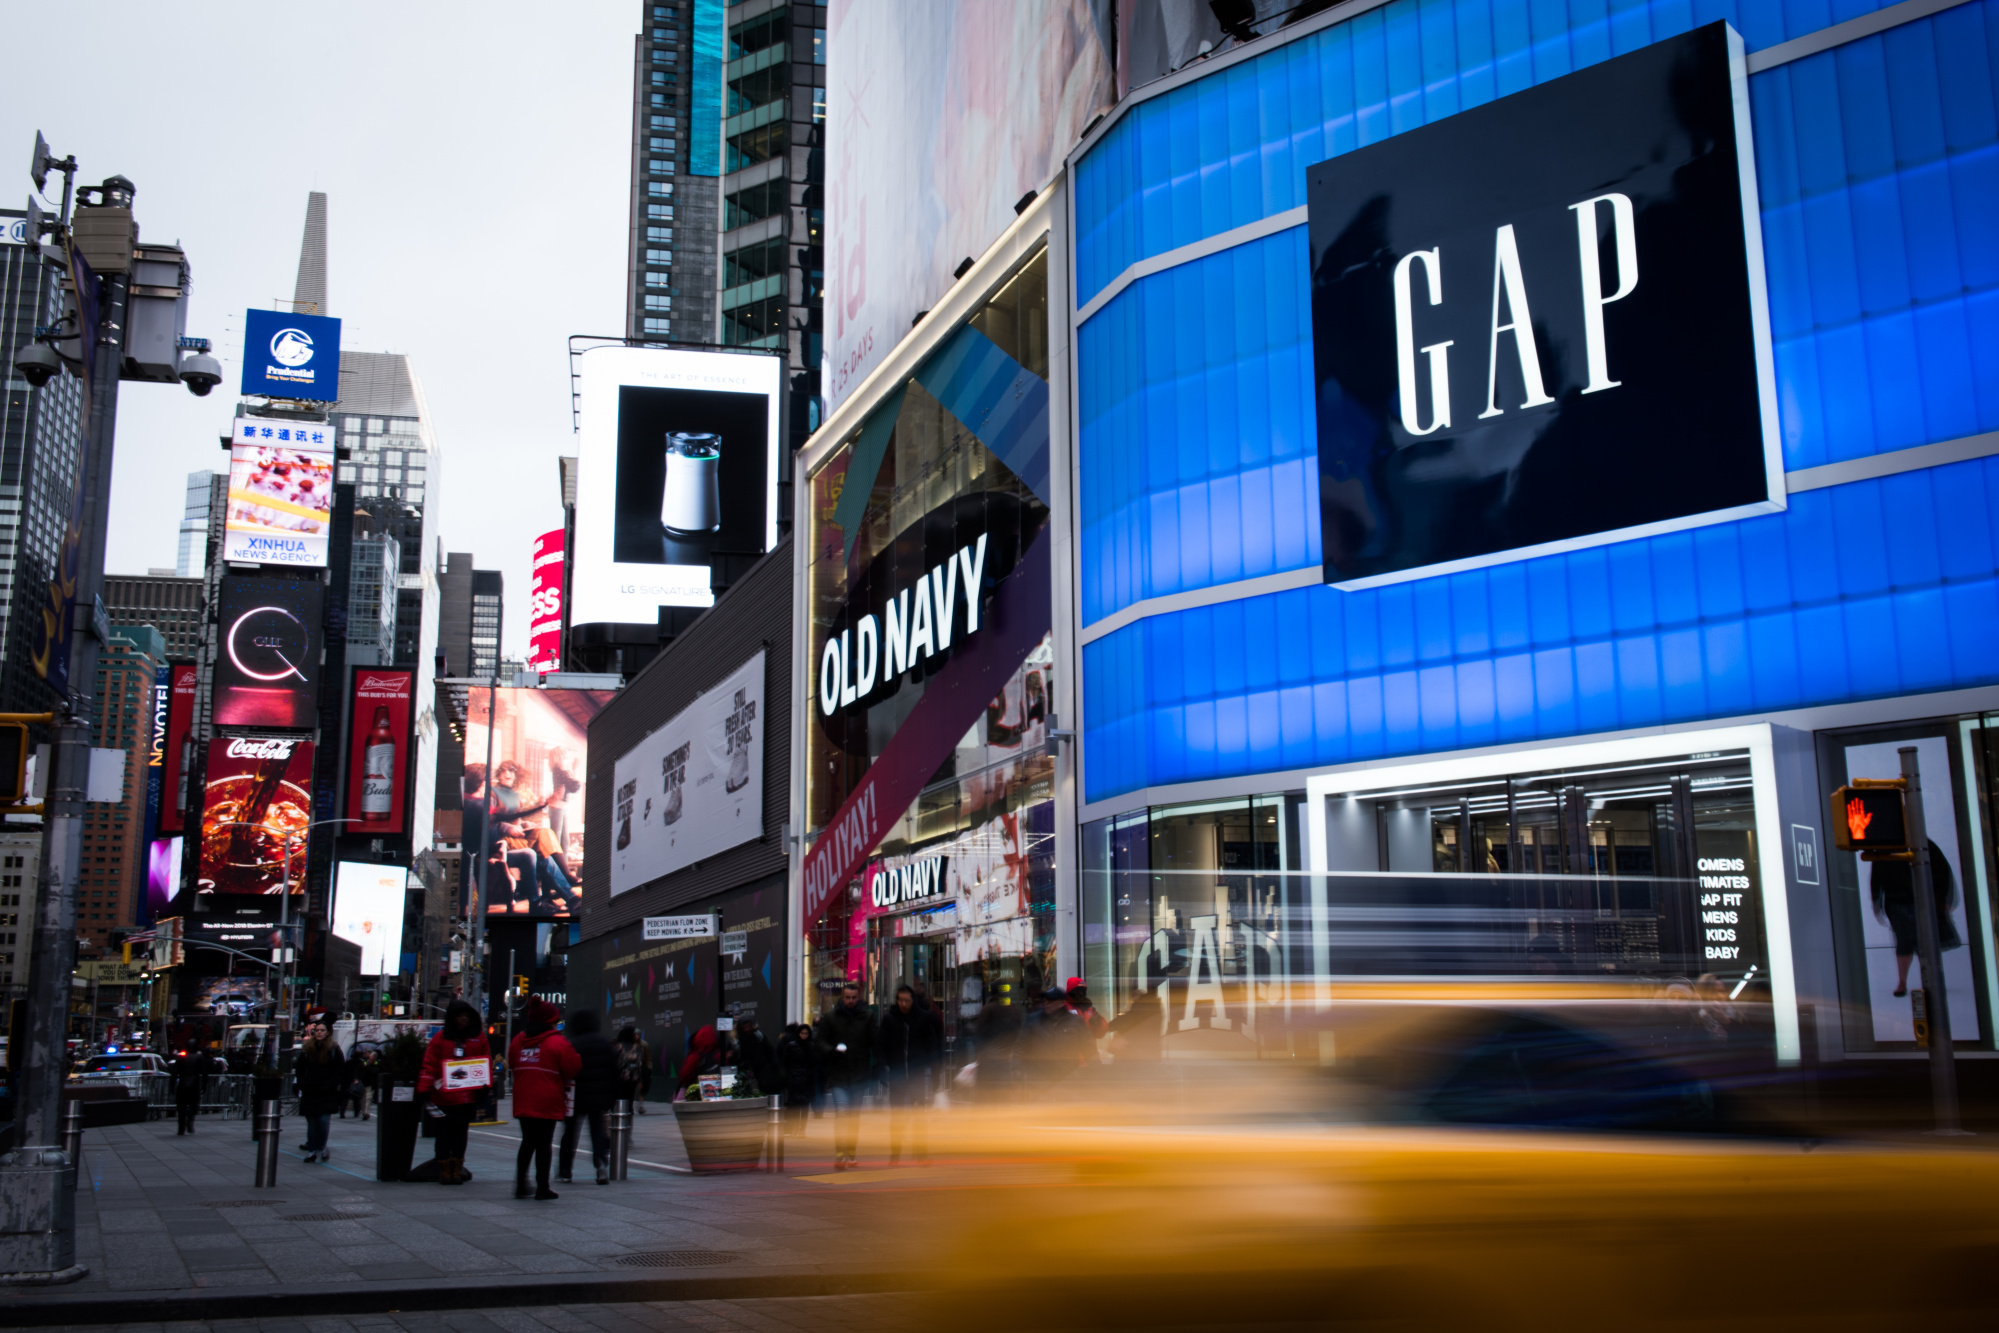 Pedestrians pass in front of Gap Inc. and Old Navy Inc. stores in the Times Square area of New York, U.S., on Wednesday, Dec. 13, 2017.